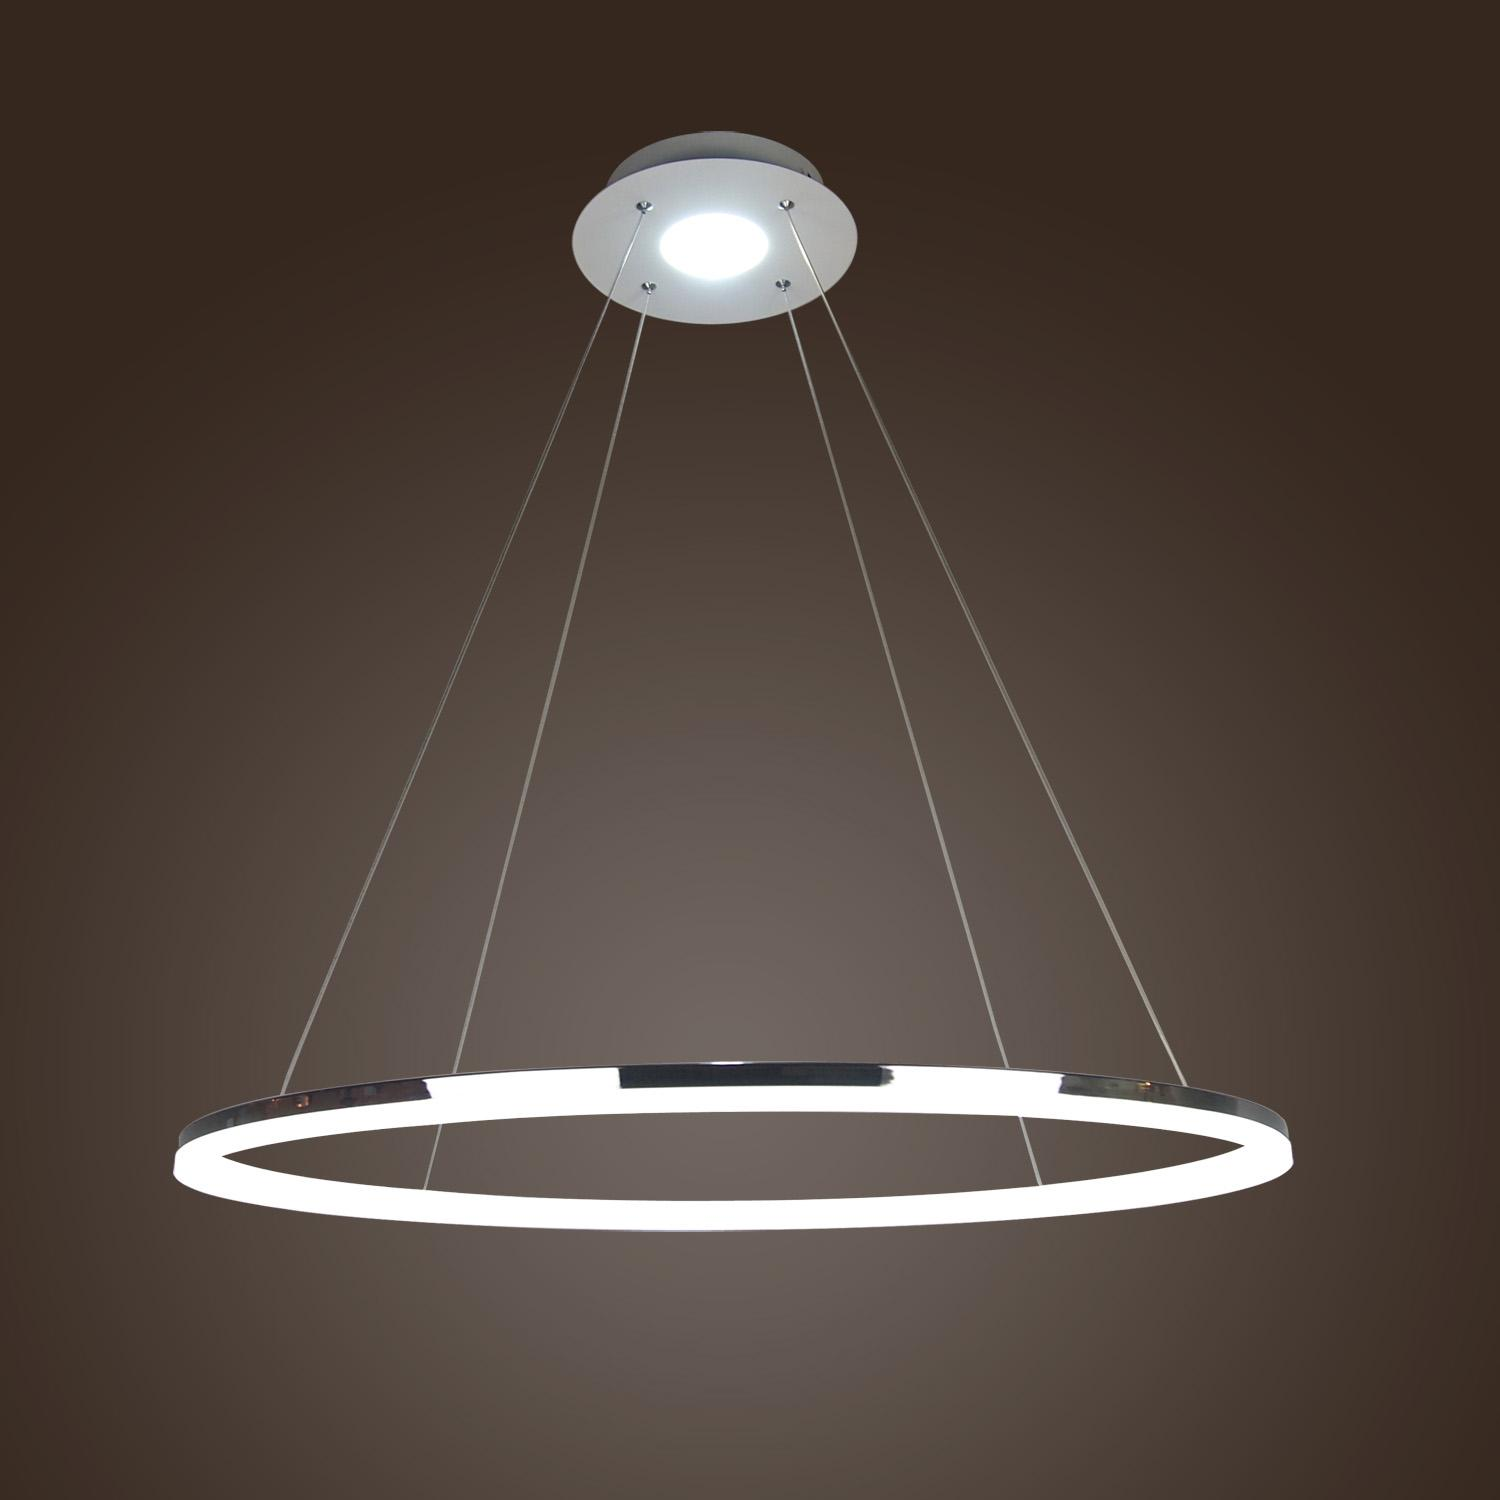 Modern 1 Ring Acrylic Pendant Light Round Ceiling Lamp LED